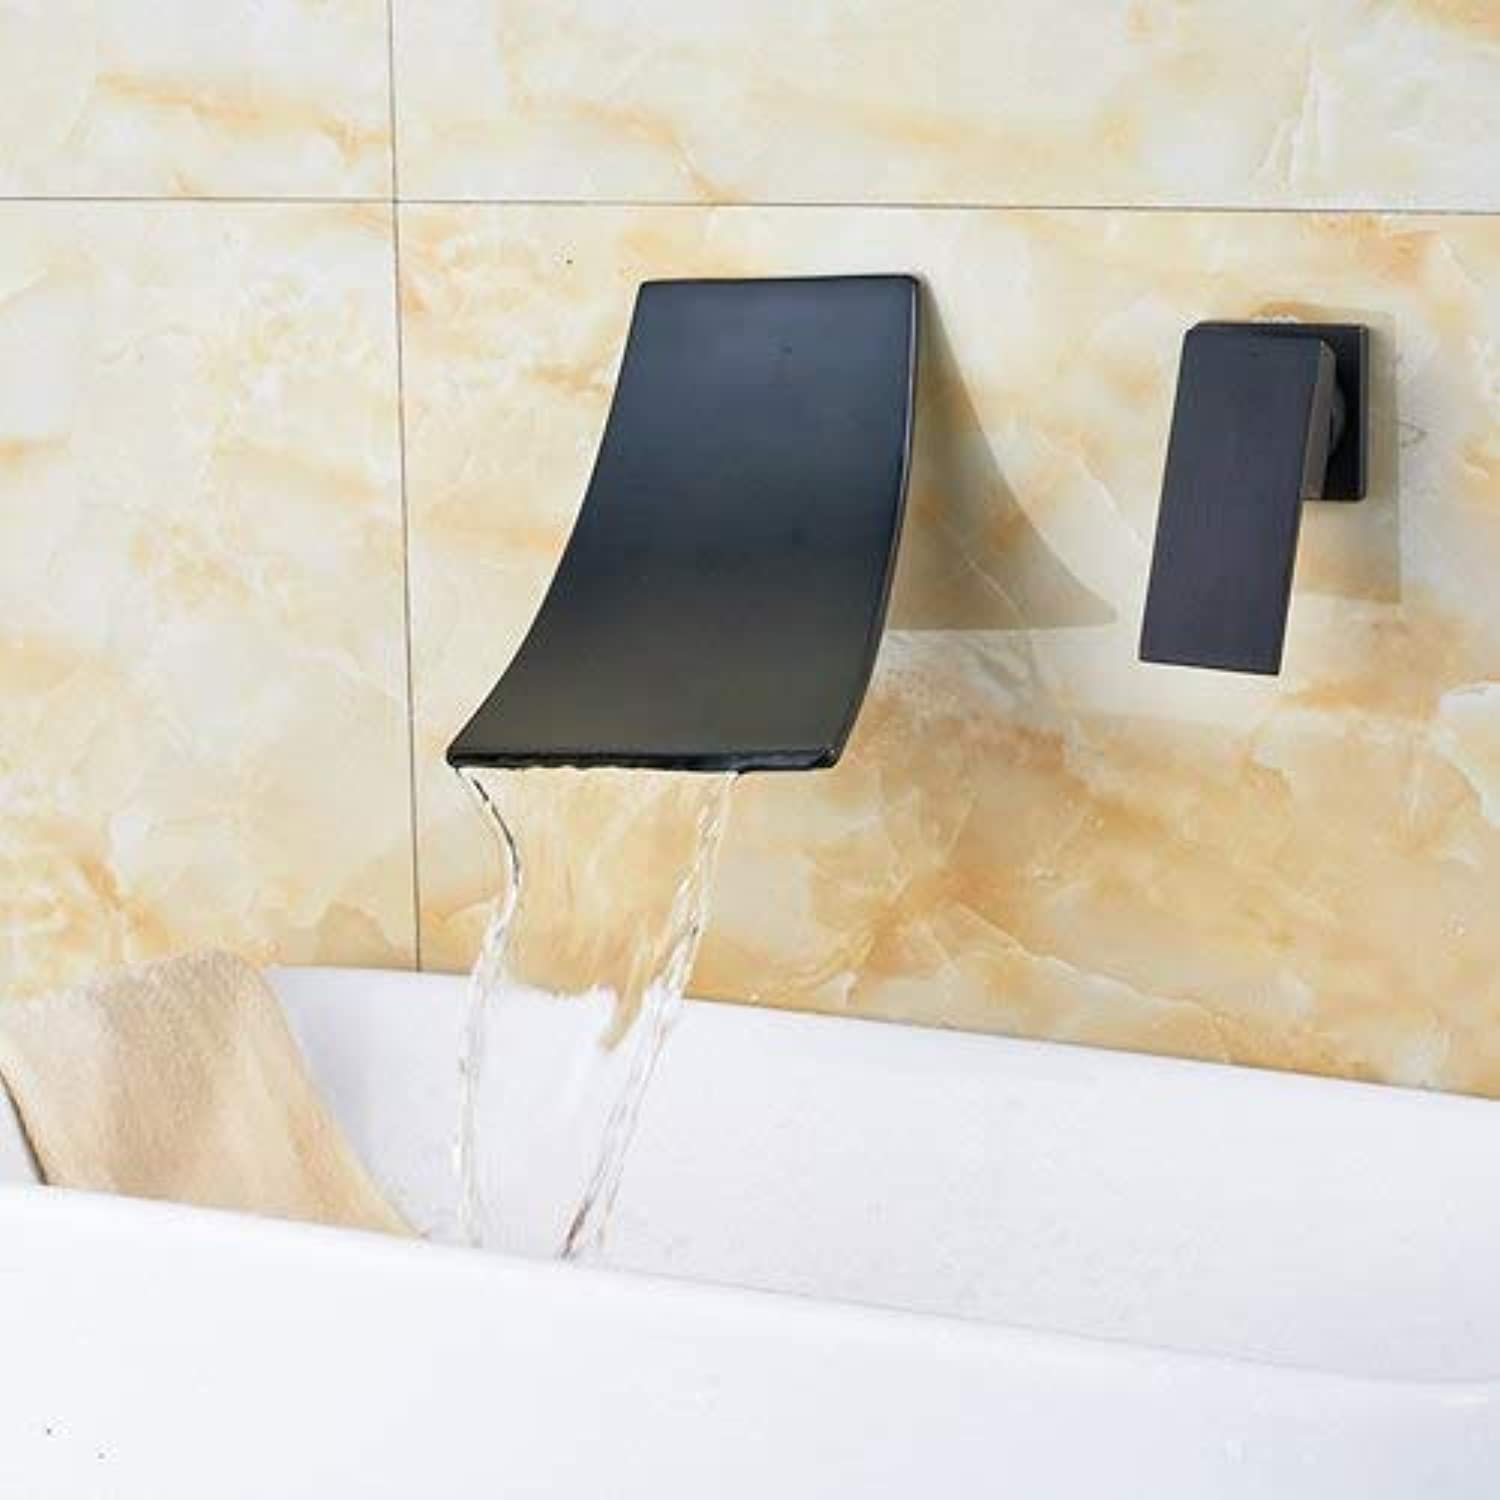 U-Enjoy Chandelier Types Water 3 Taps Arrival Top Quality Bathroom New Faucet with Waterfall Spout Oil Rubbed Widespread Bronze Free Shipping [Black 2]